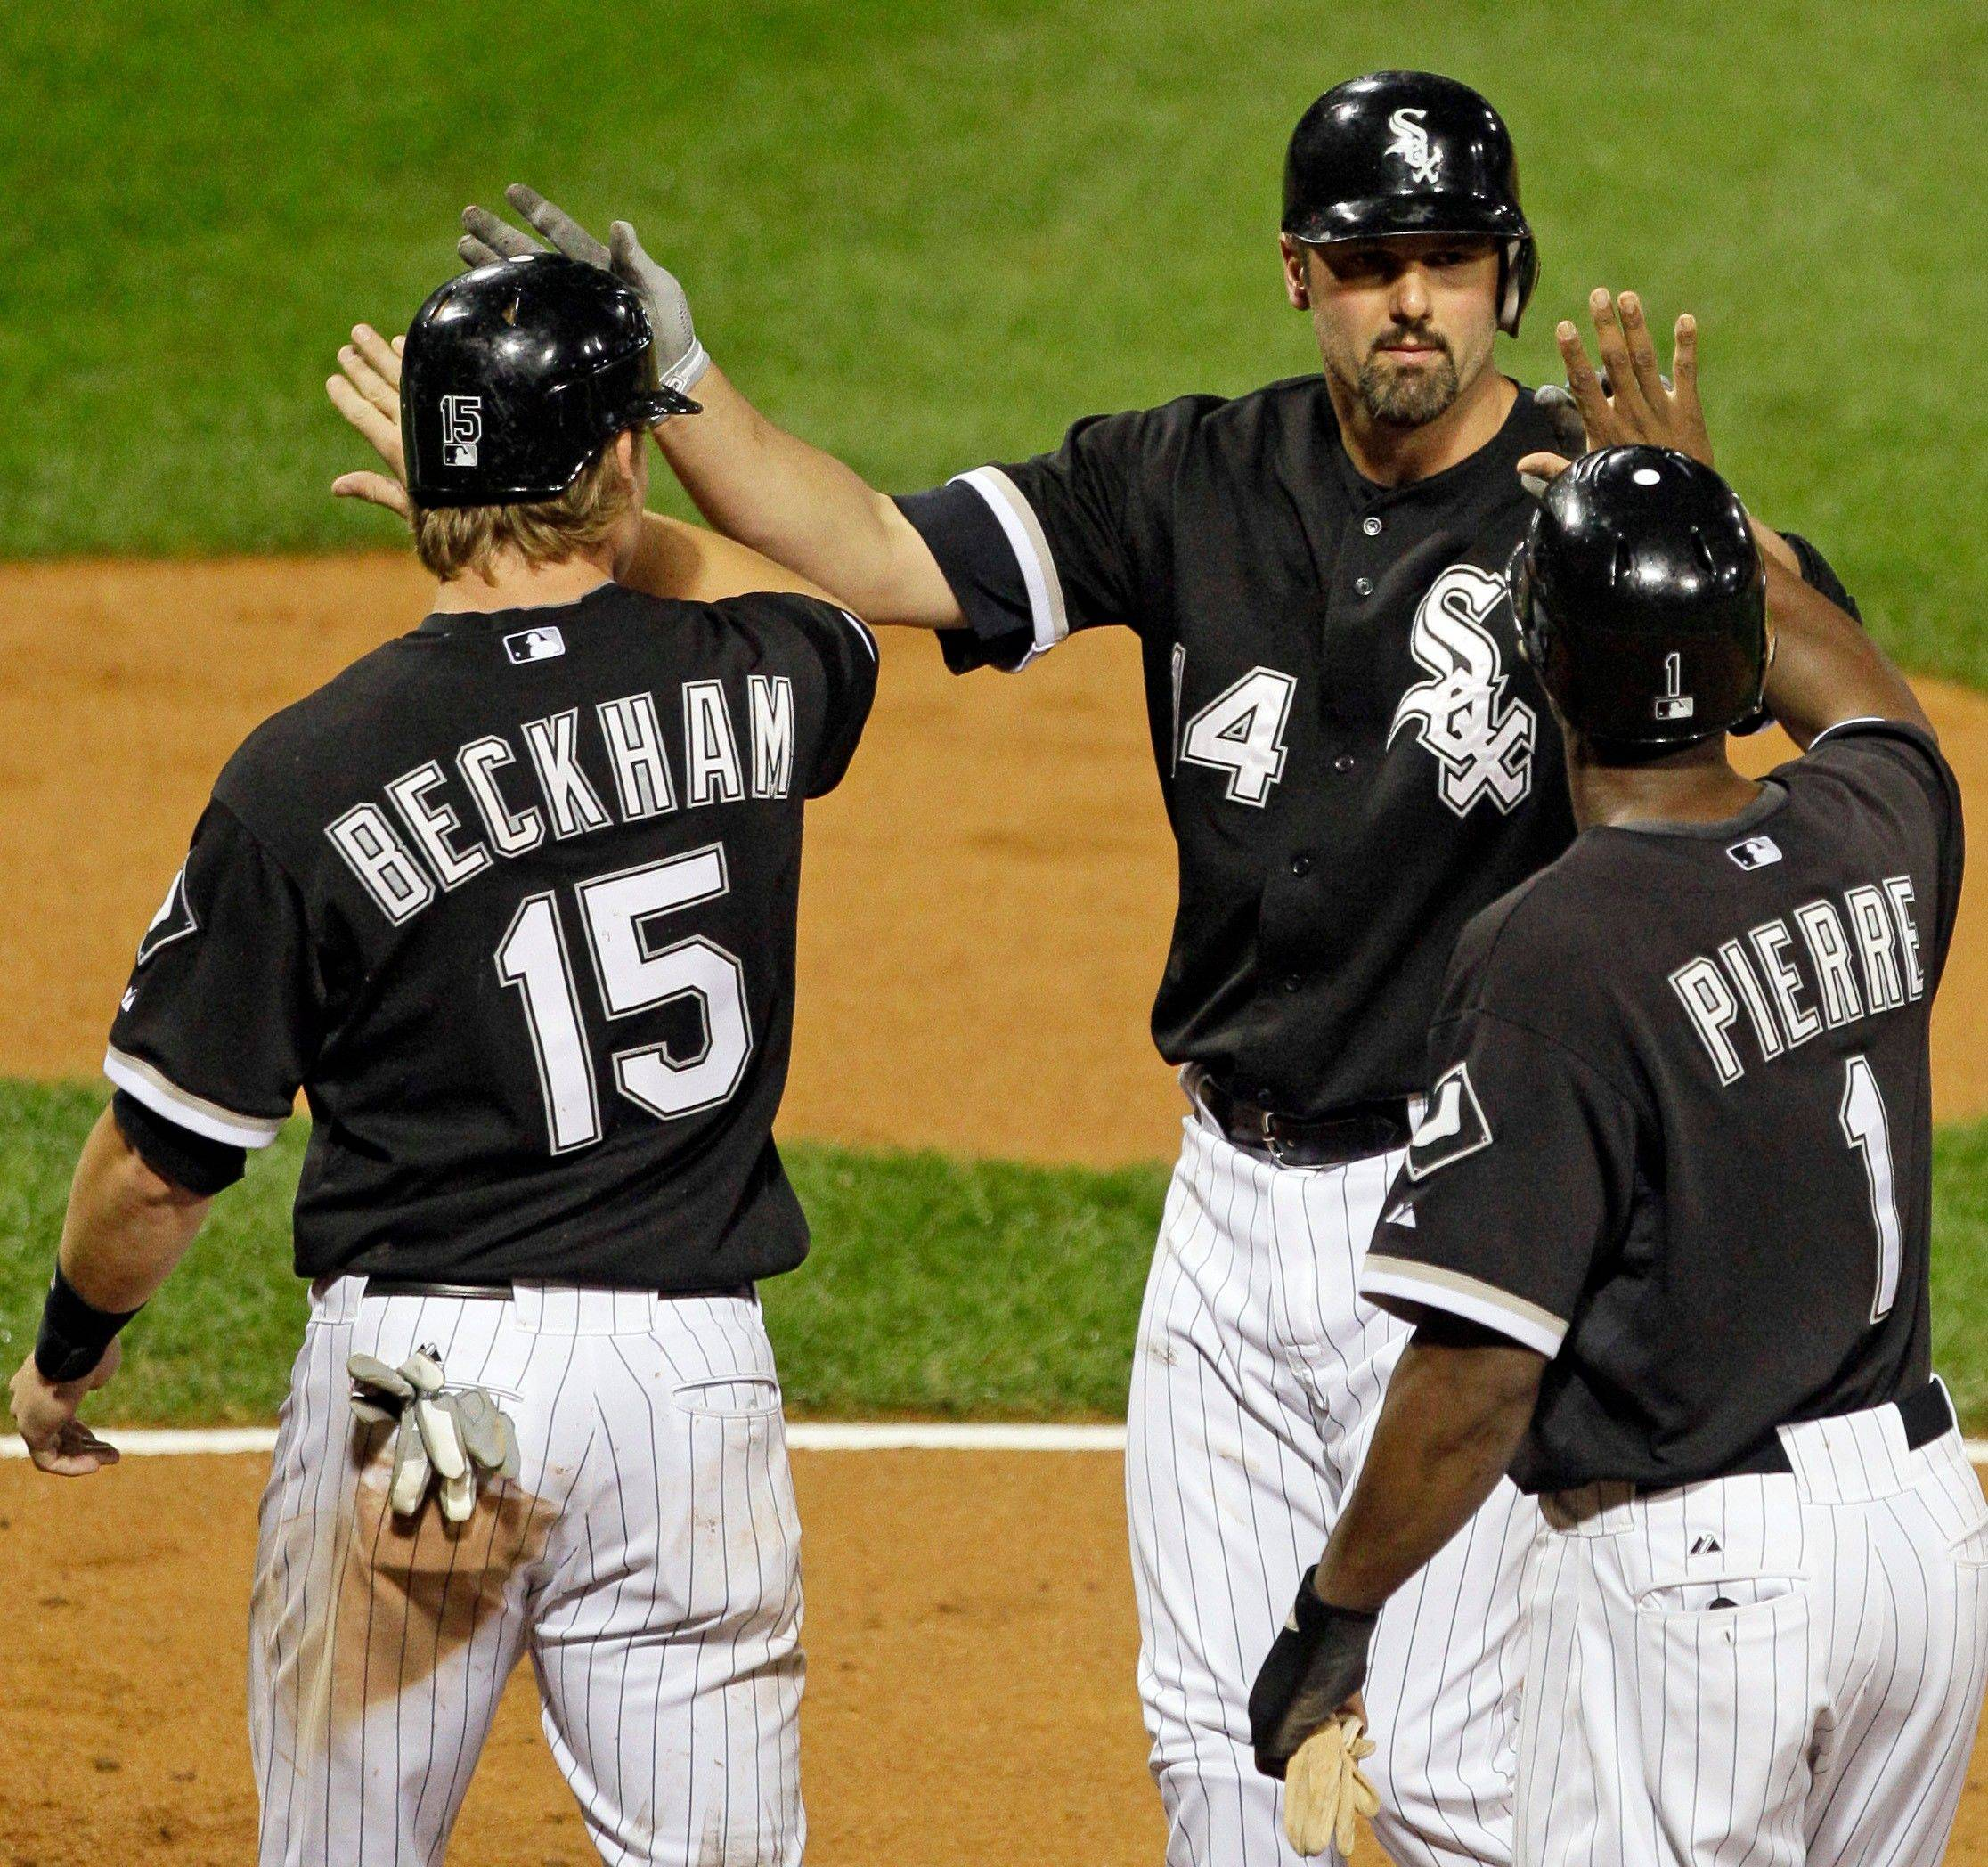 Paul Konerko, middle, celebrates with Gordon Beckham (15) and Juan Pierre (1) after hitting a grand slam during the White Sox' 7-run seventh inning.